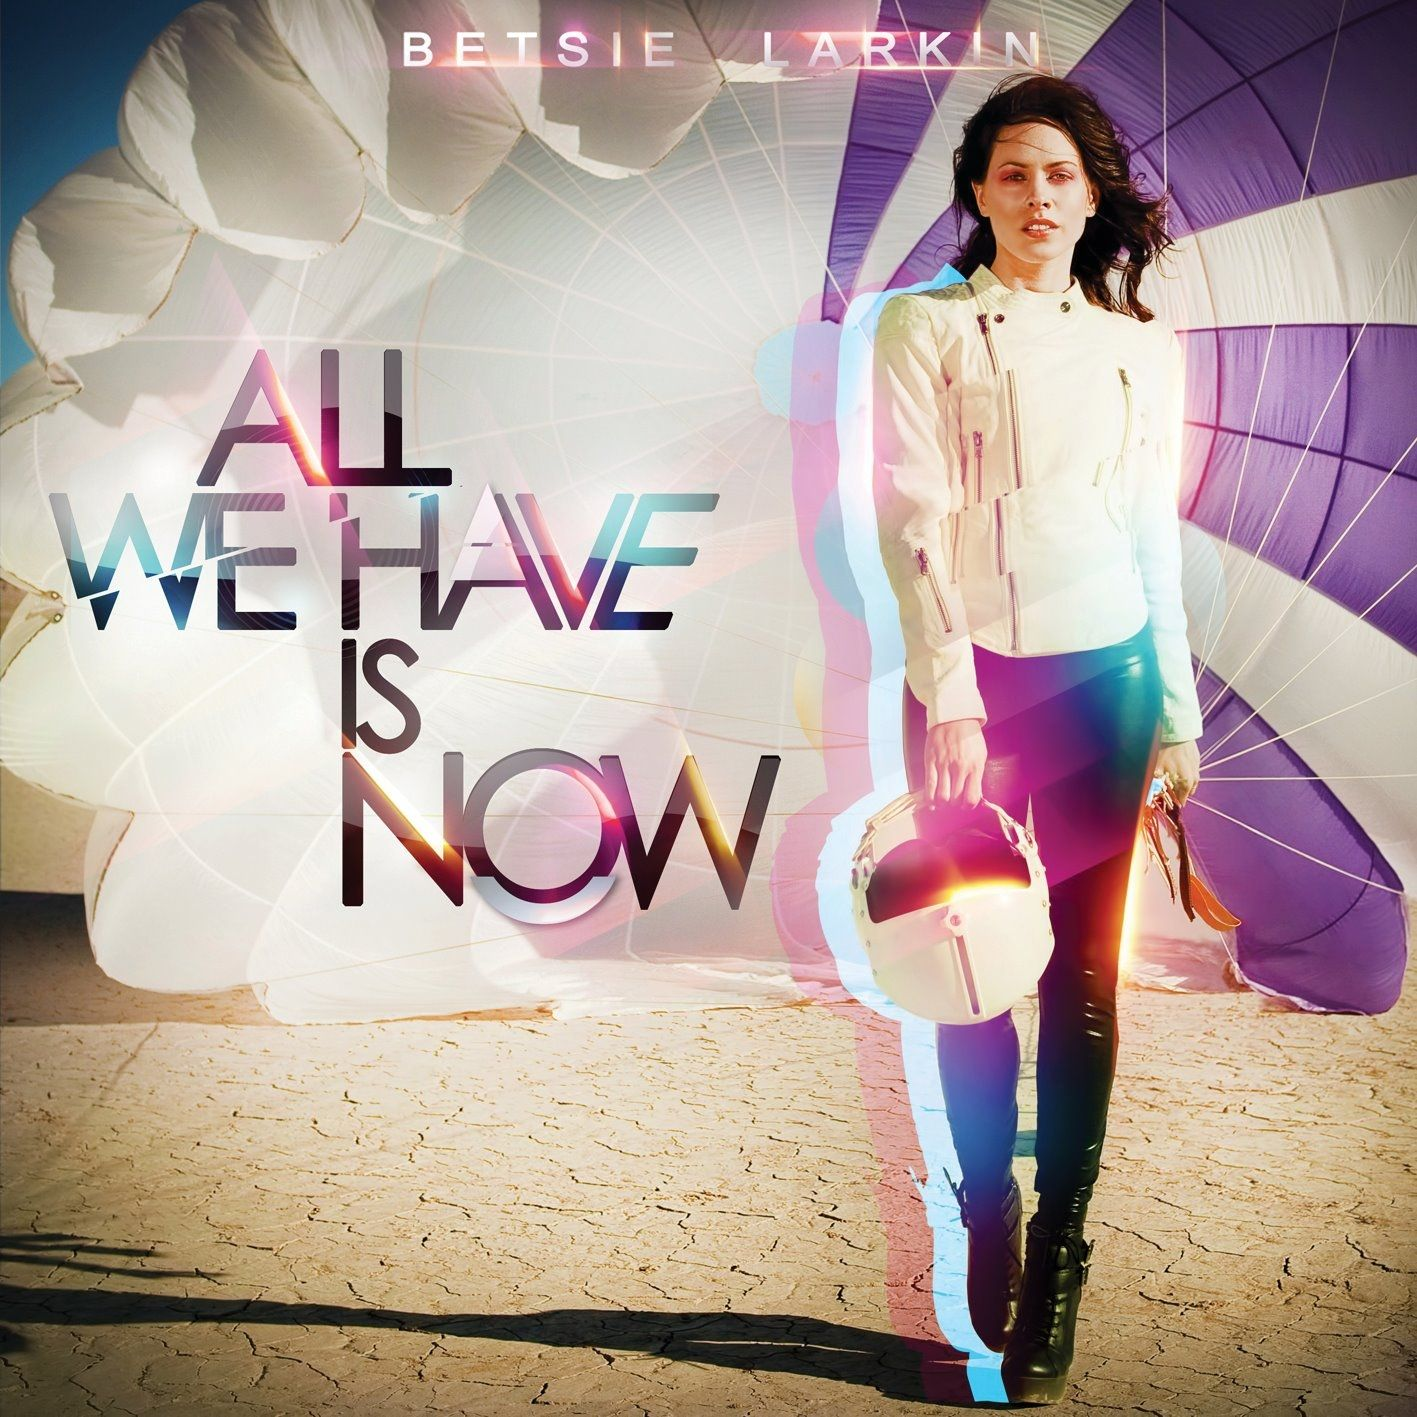 betsie larkin all we have is now